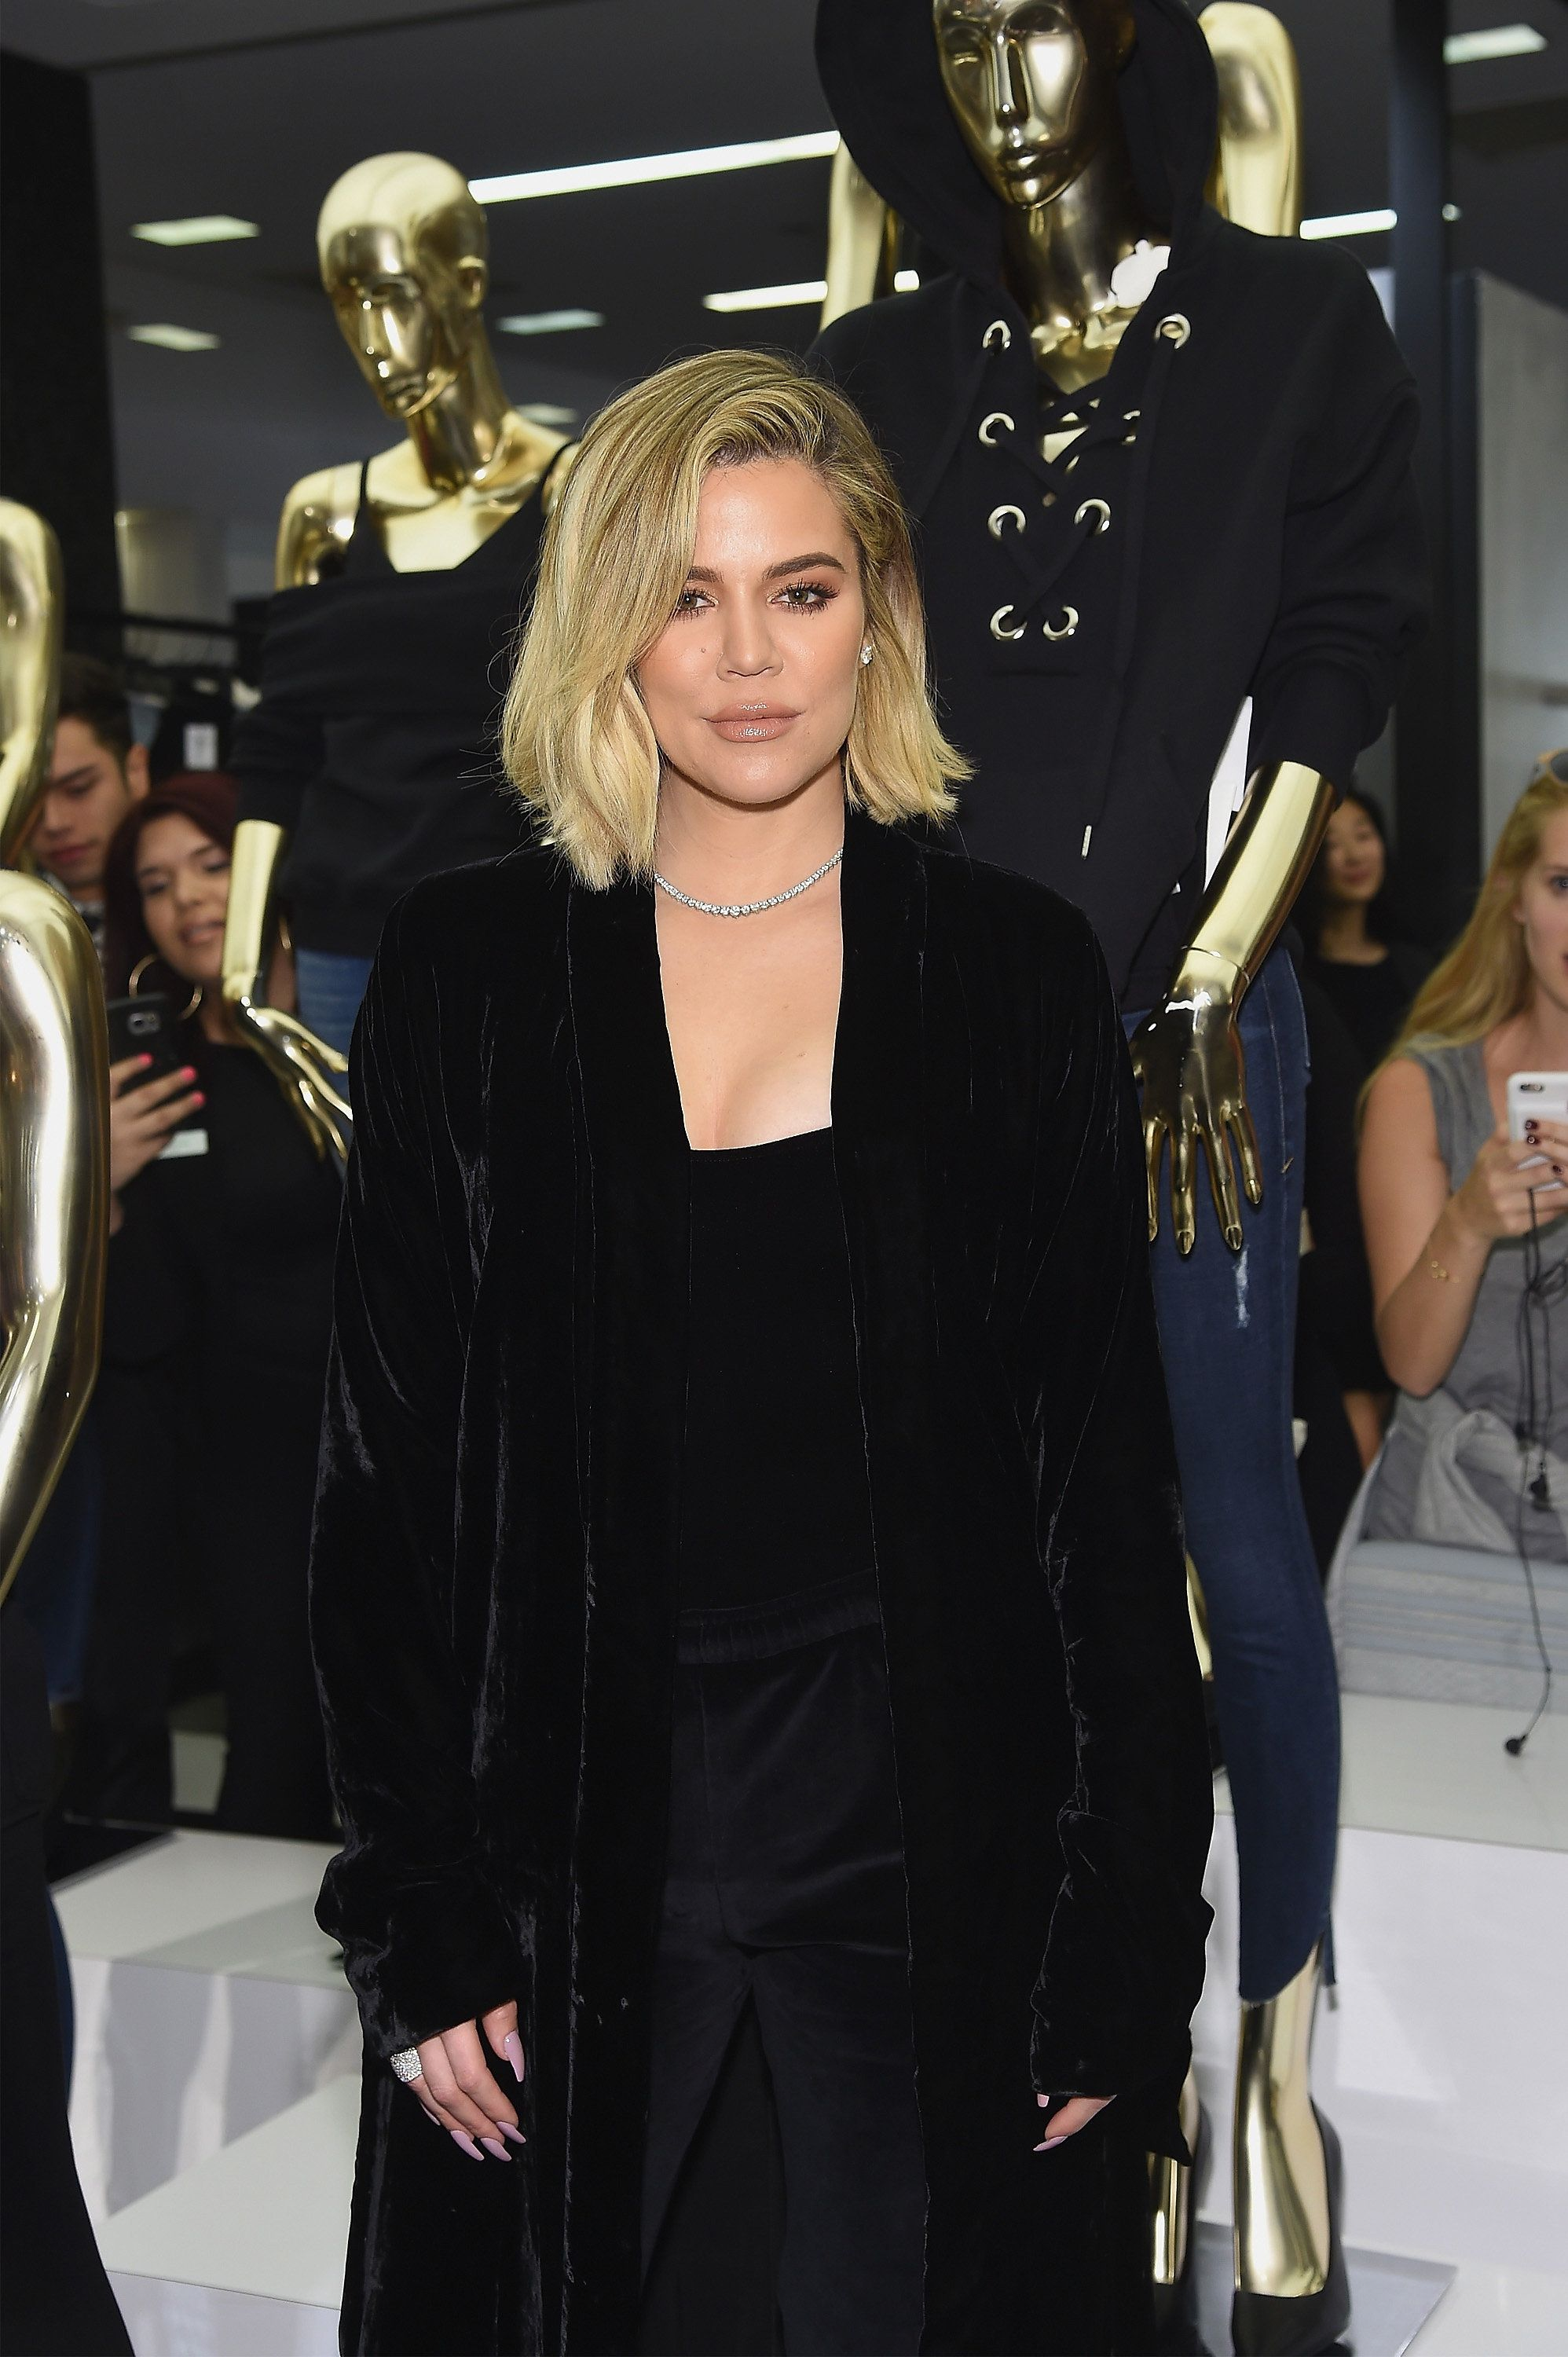 Khloe Kardashian Slams Critics Of Her Pregnancy